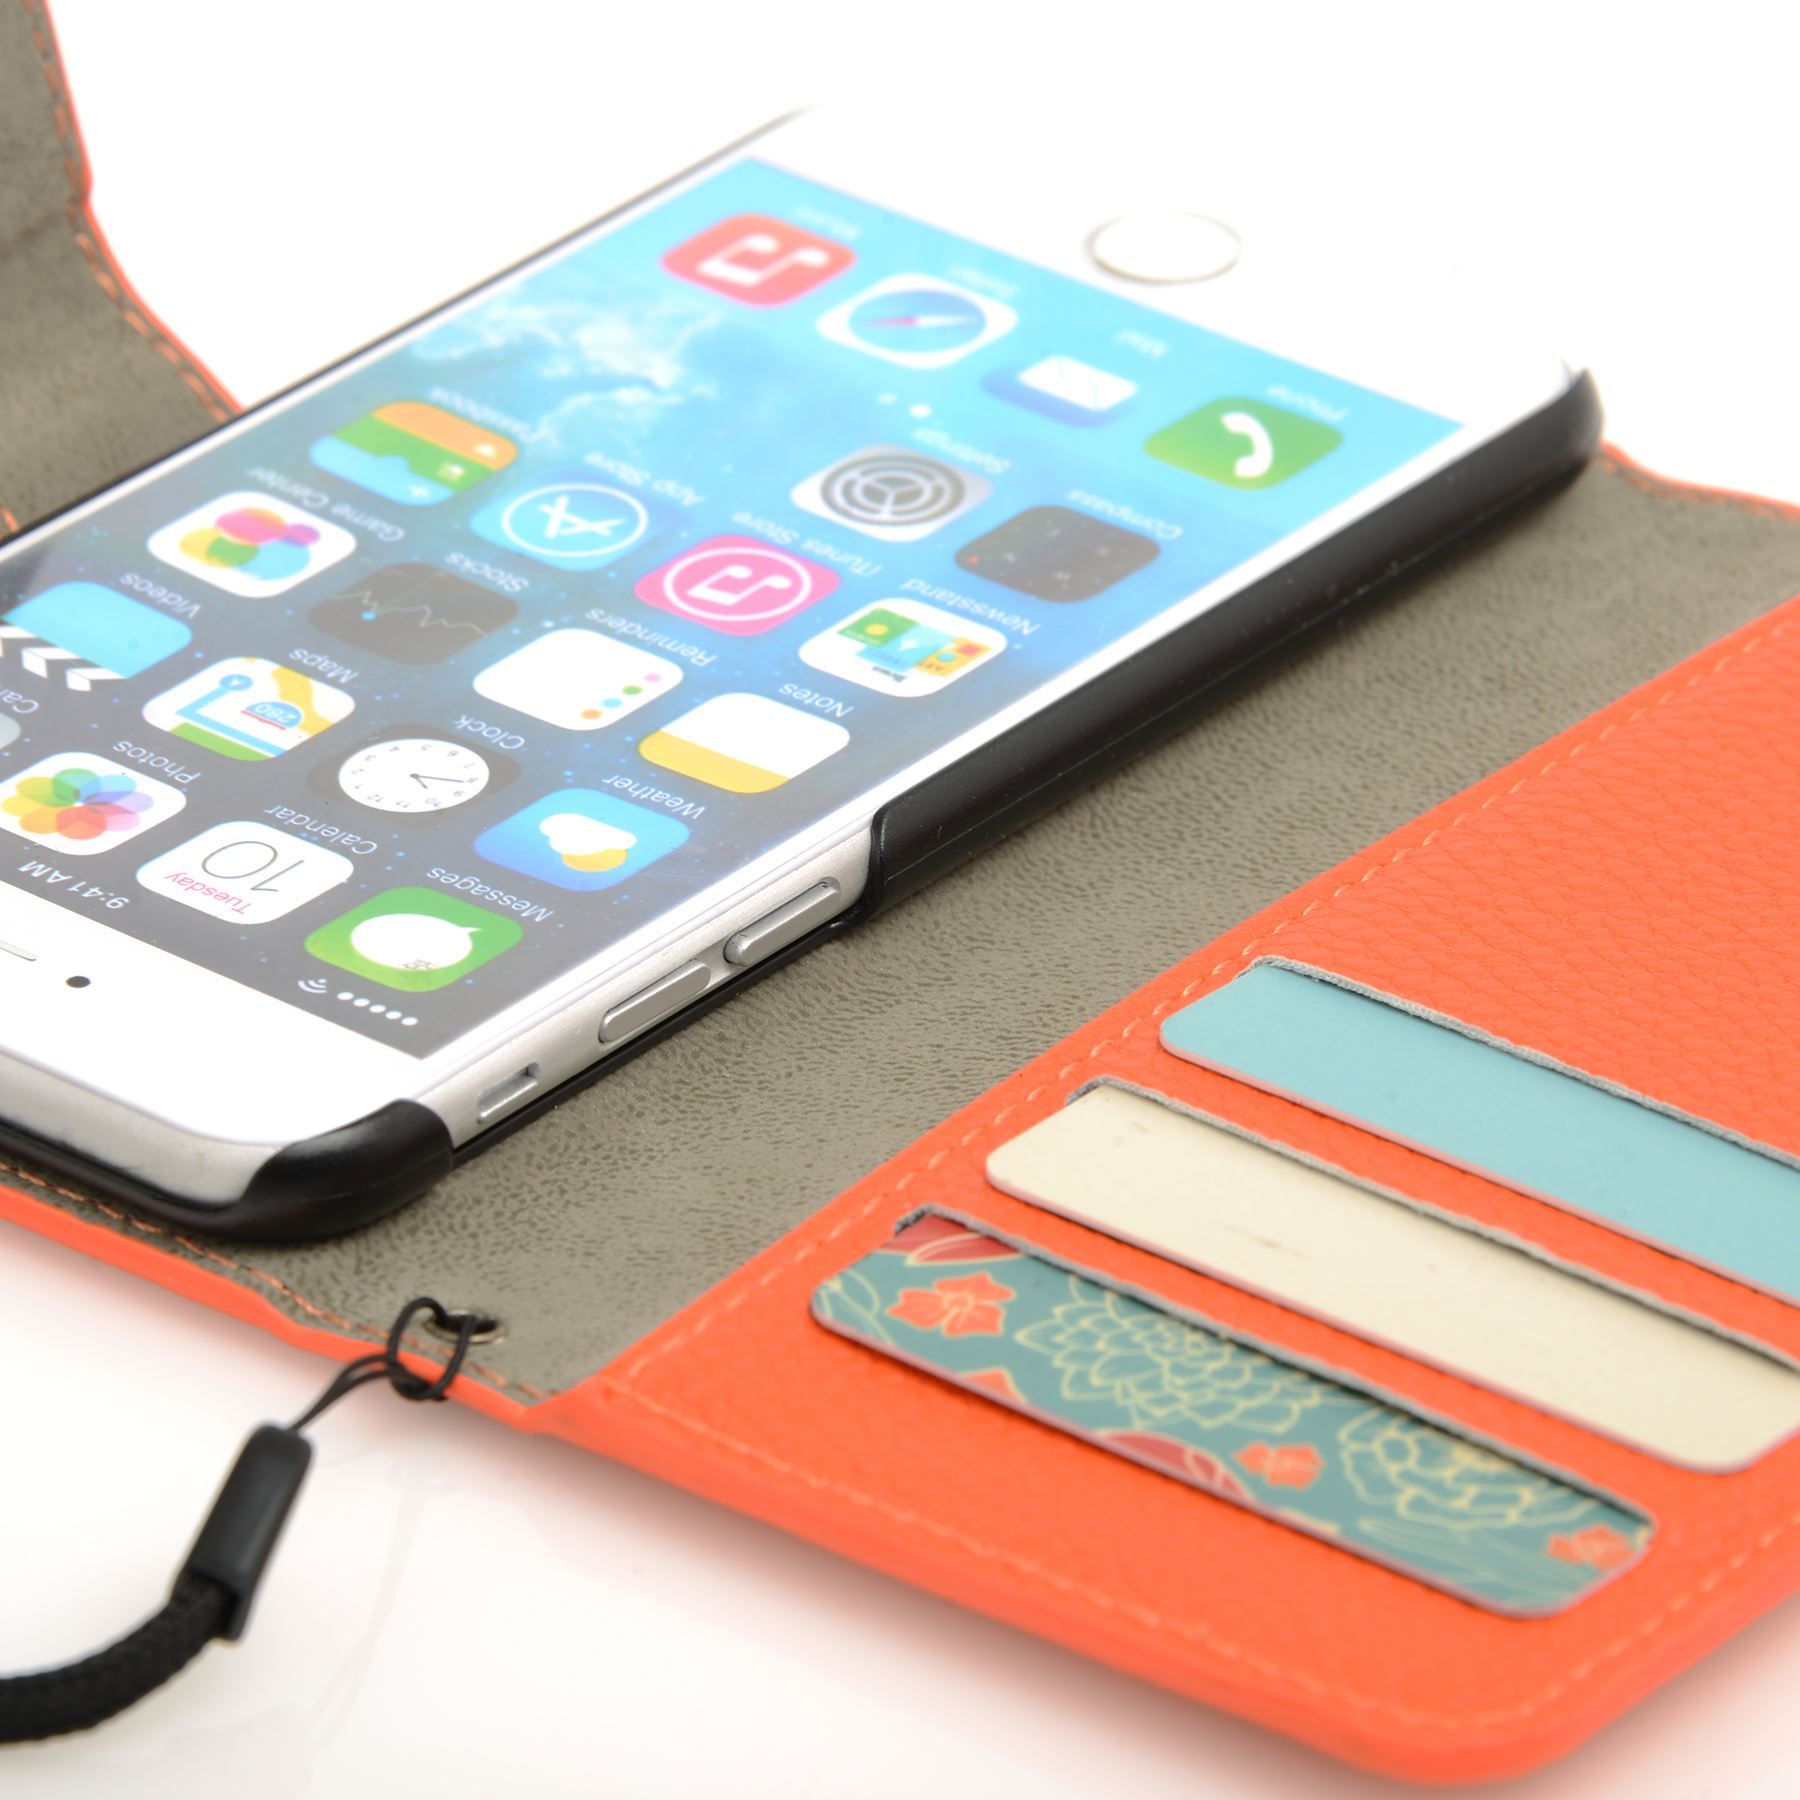 thumbnail 24 - For Apple iPhone 6s 6 Case Premium Textured Leather Wallet Madcase Cover